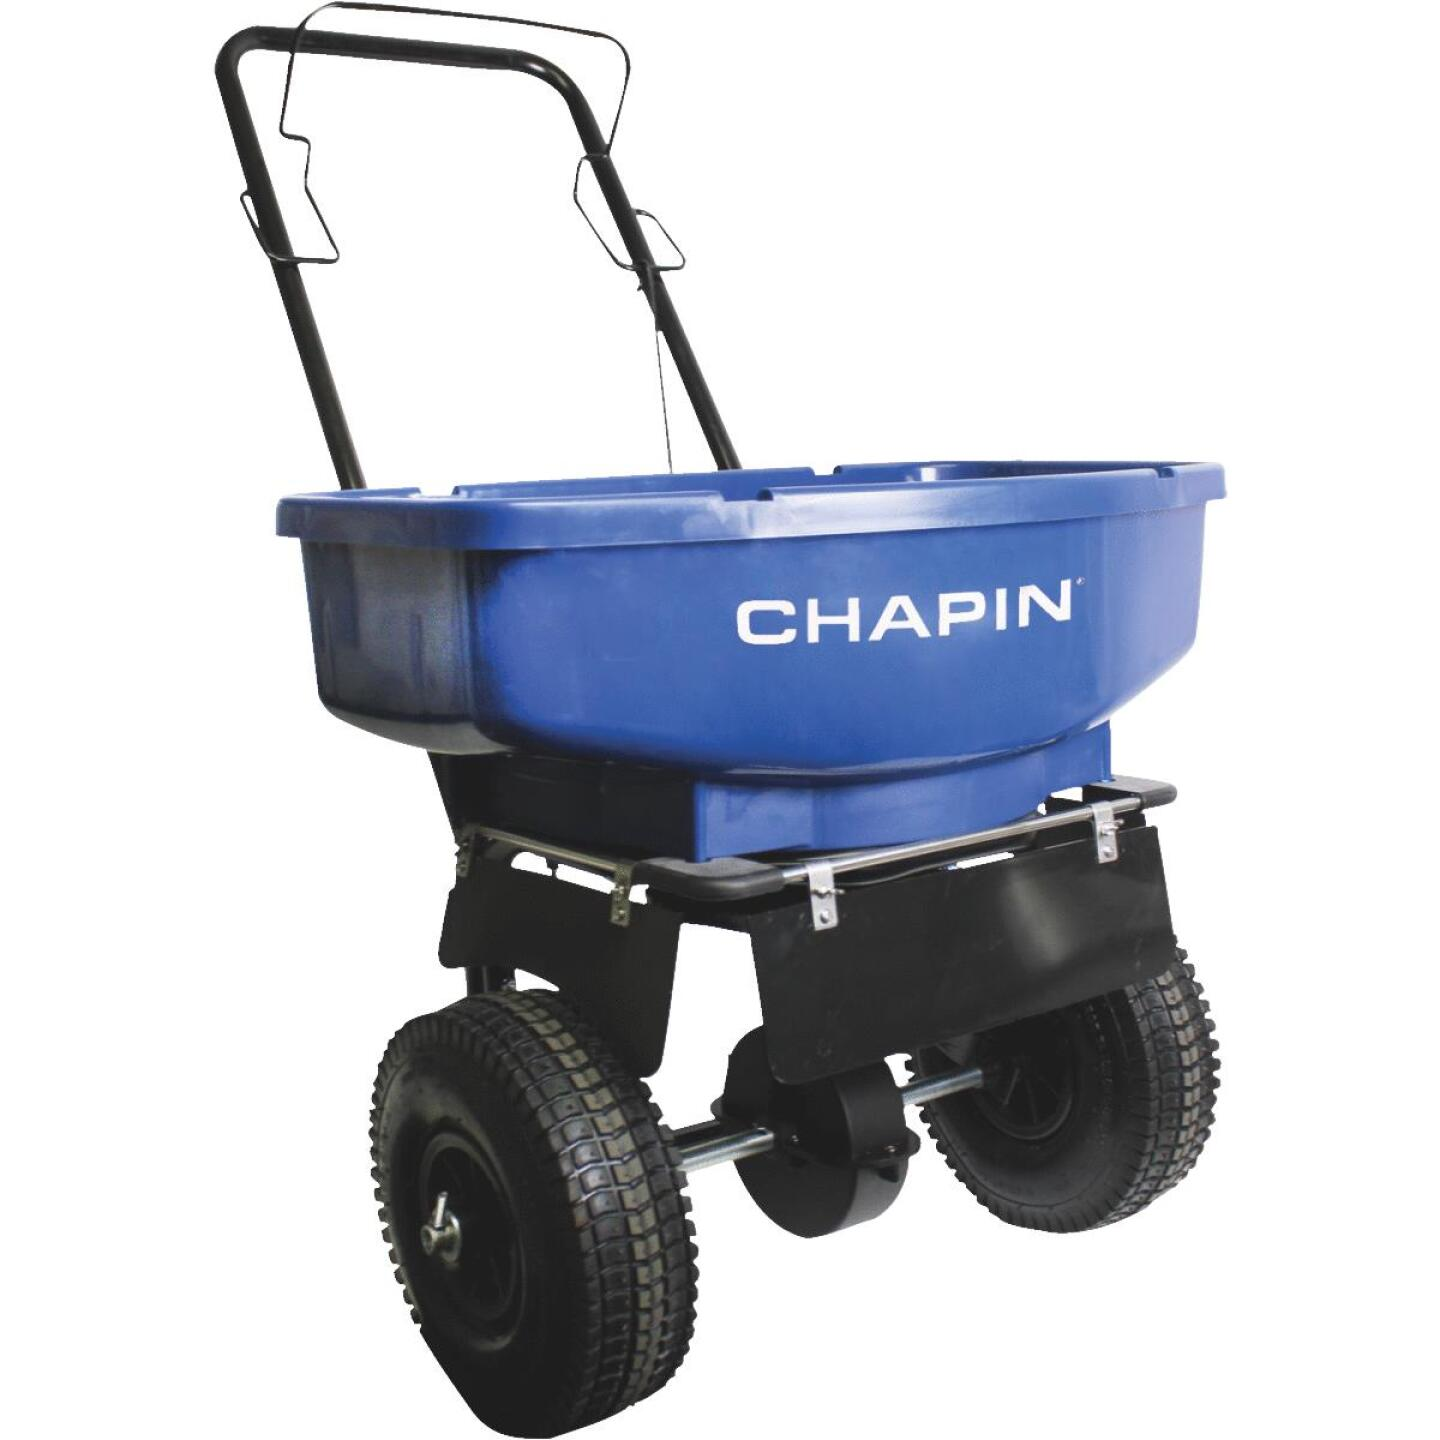 Chapin 80 Lb. Salt & Ice Melt Spreader Image 1